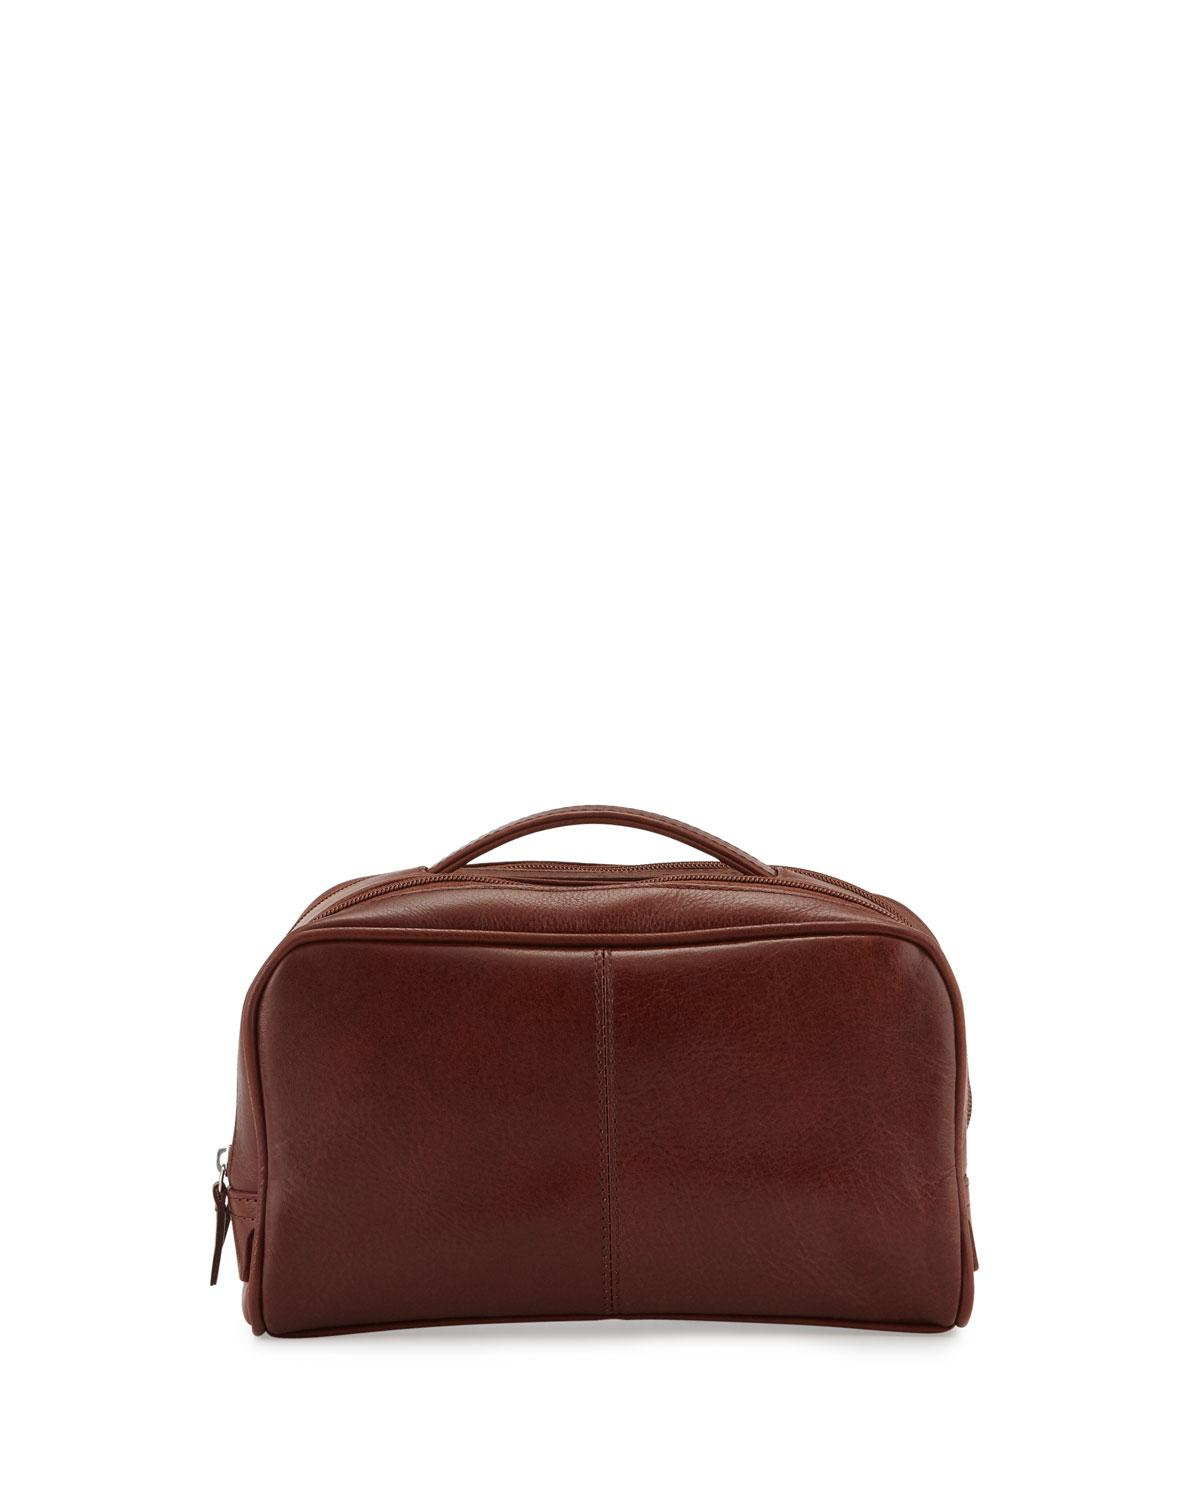 Lyst - Neiman Marcus Leather Travel Bag Brown in Brown - Save 30% 5afd98365c647